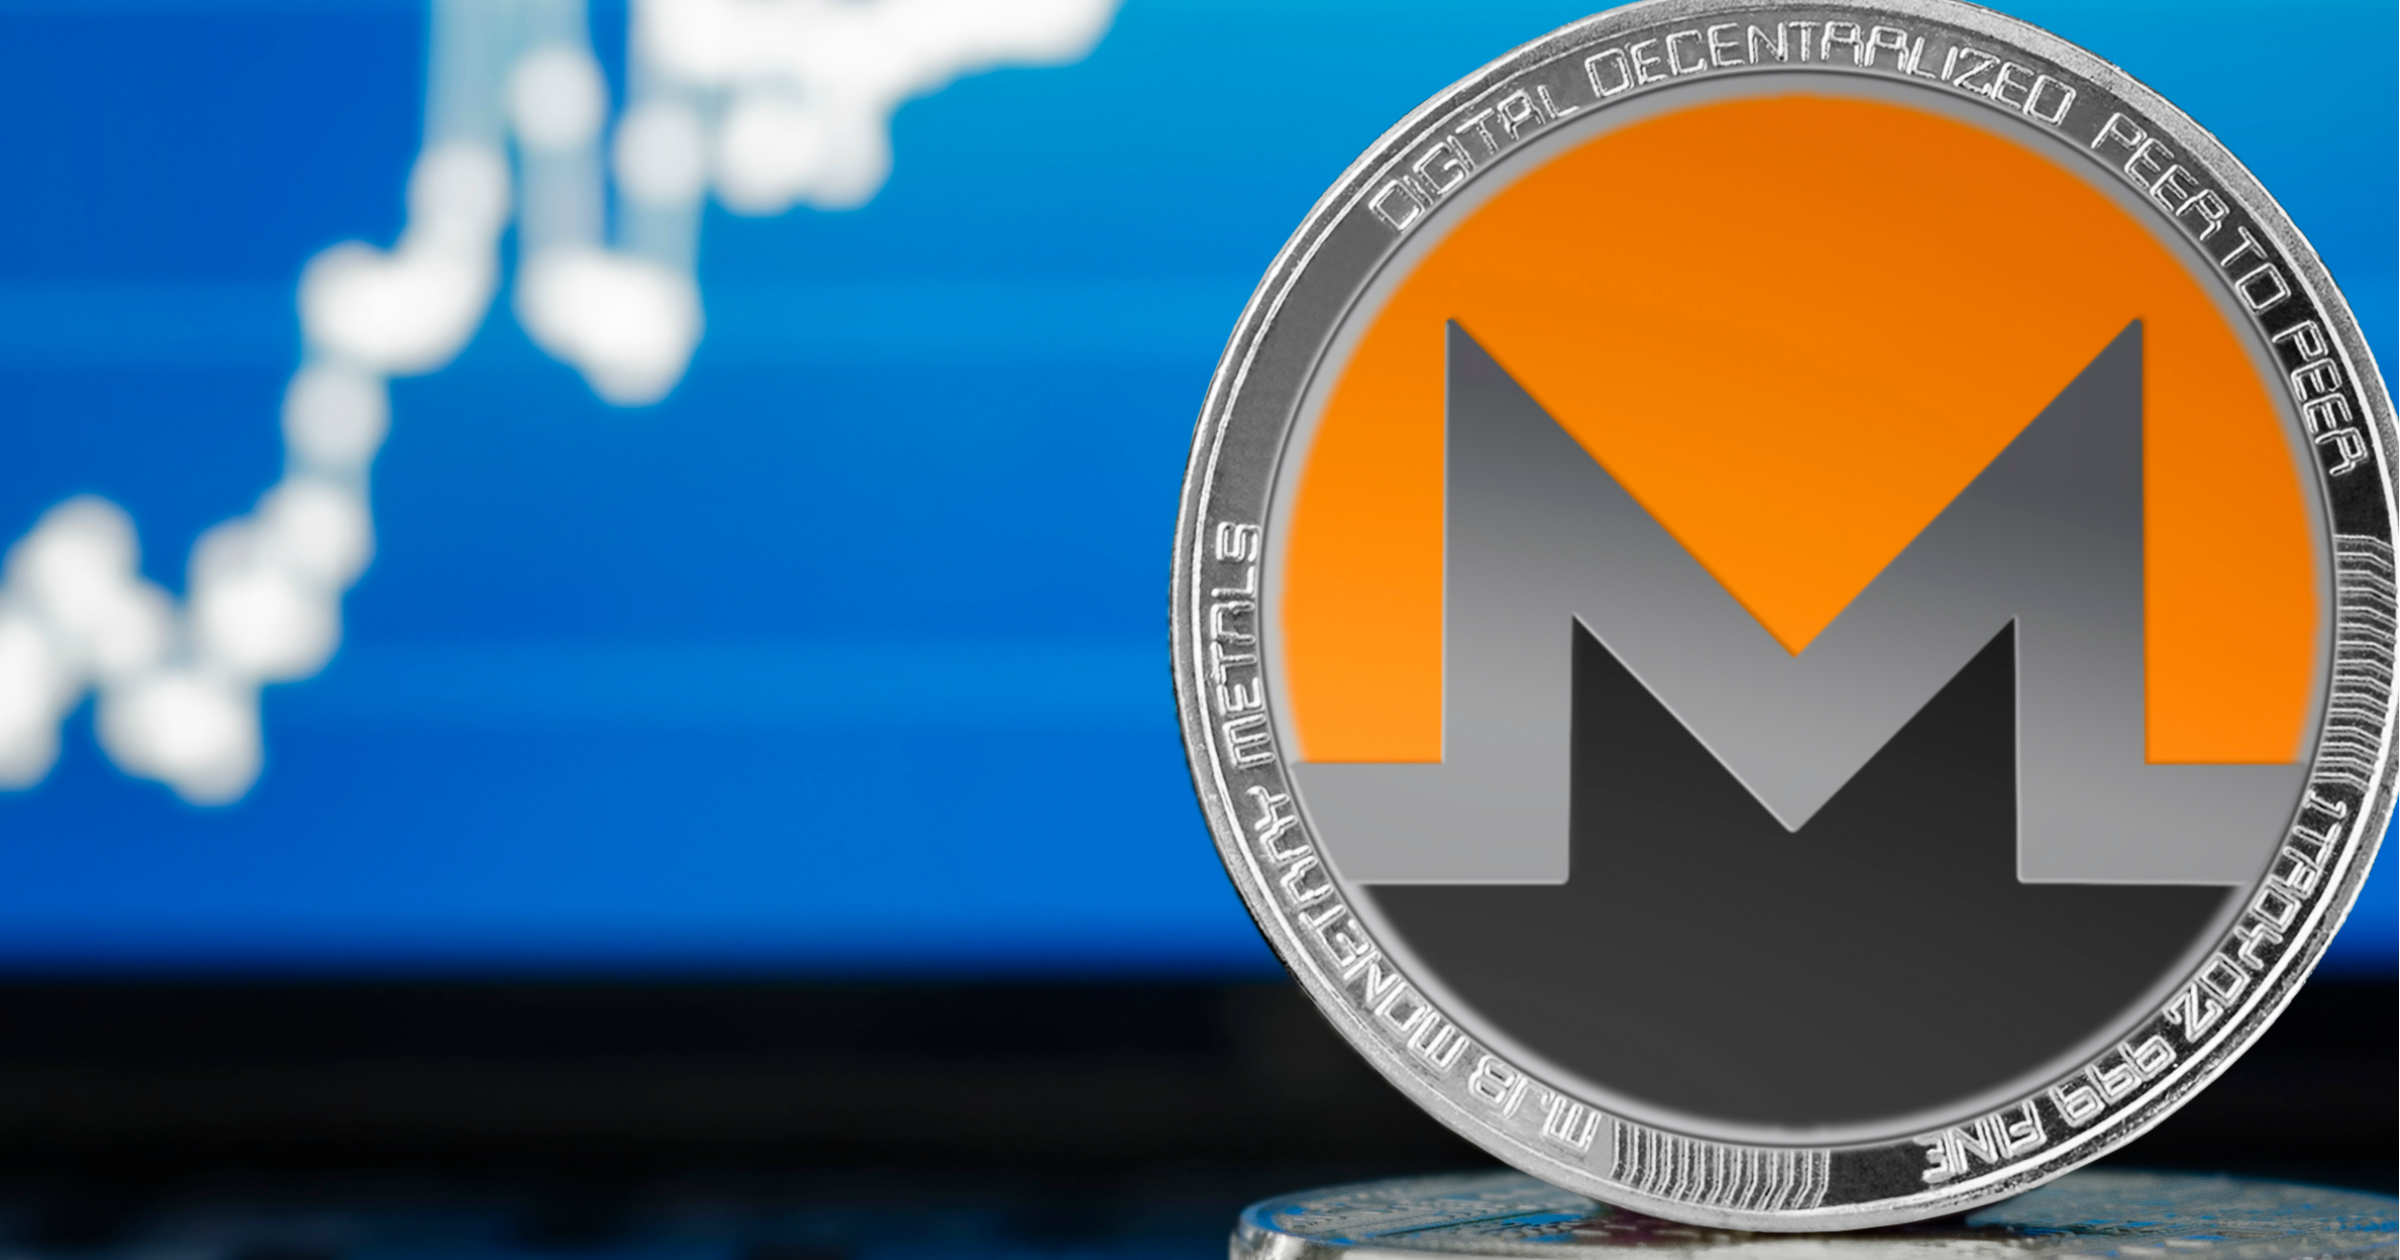 Monero crypto currency prices mcleans gaa club match betting